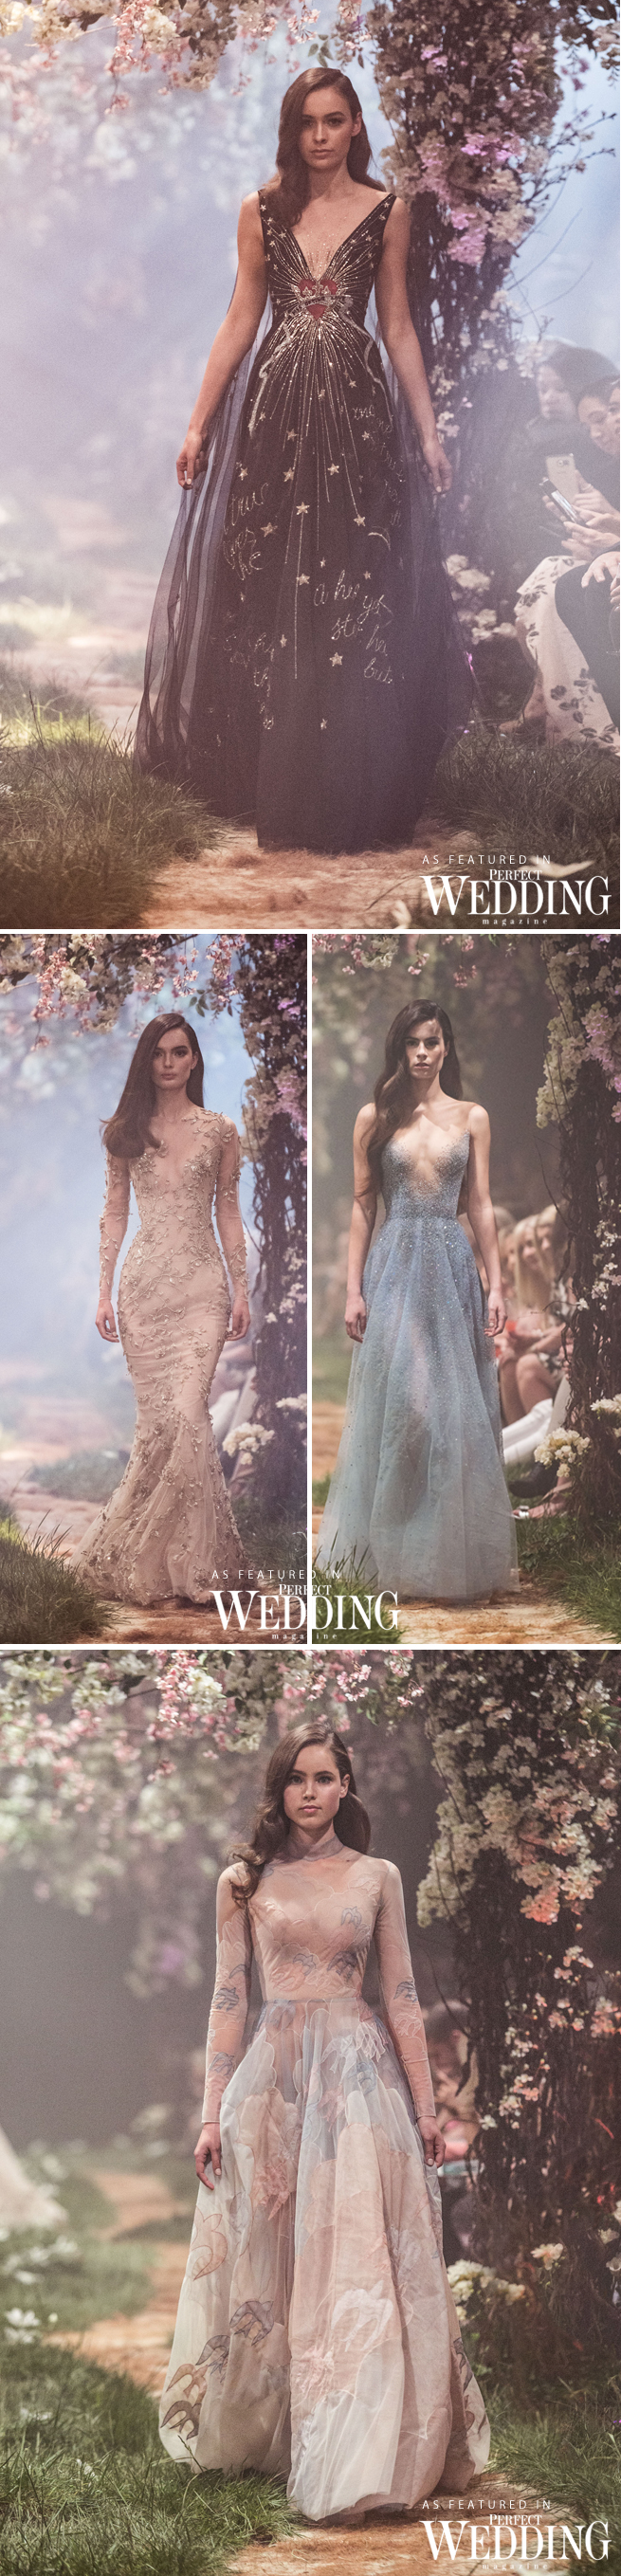 Paolo Sebastian, Paolo Sebastian Couture, Paolo Sebastian Once Upon a Dream, Once Upon a Dream, Couture Collection, Wedding dresses, Disney, Perfect Wedding Magazine, Disney wedding, Disney Bride, Perfect Wedding Blog